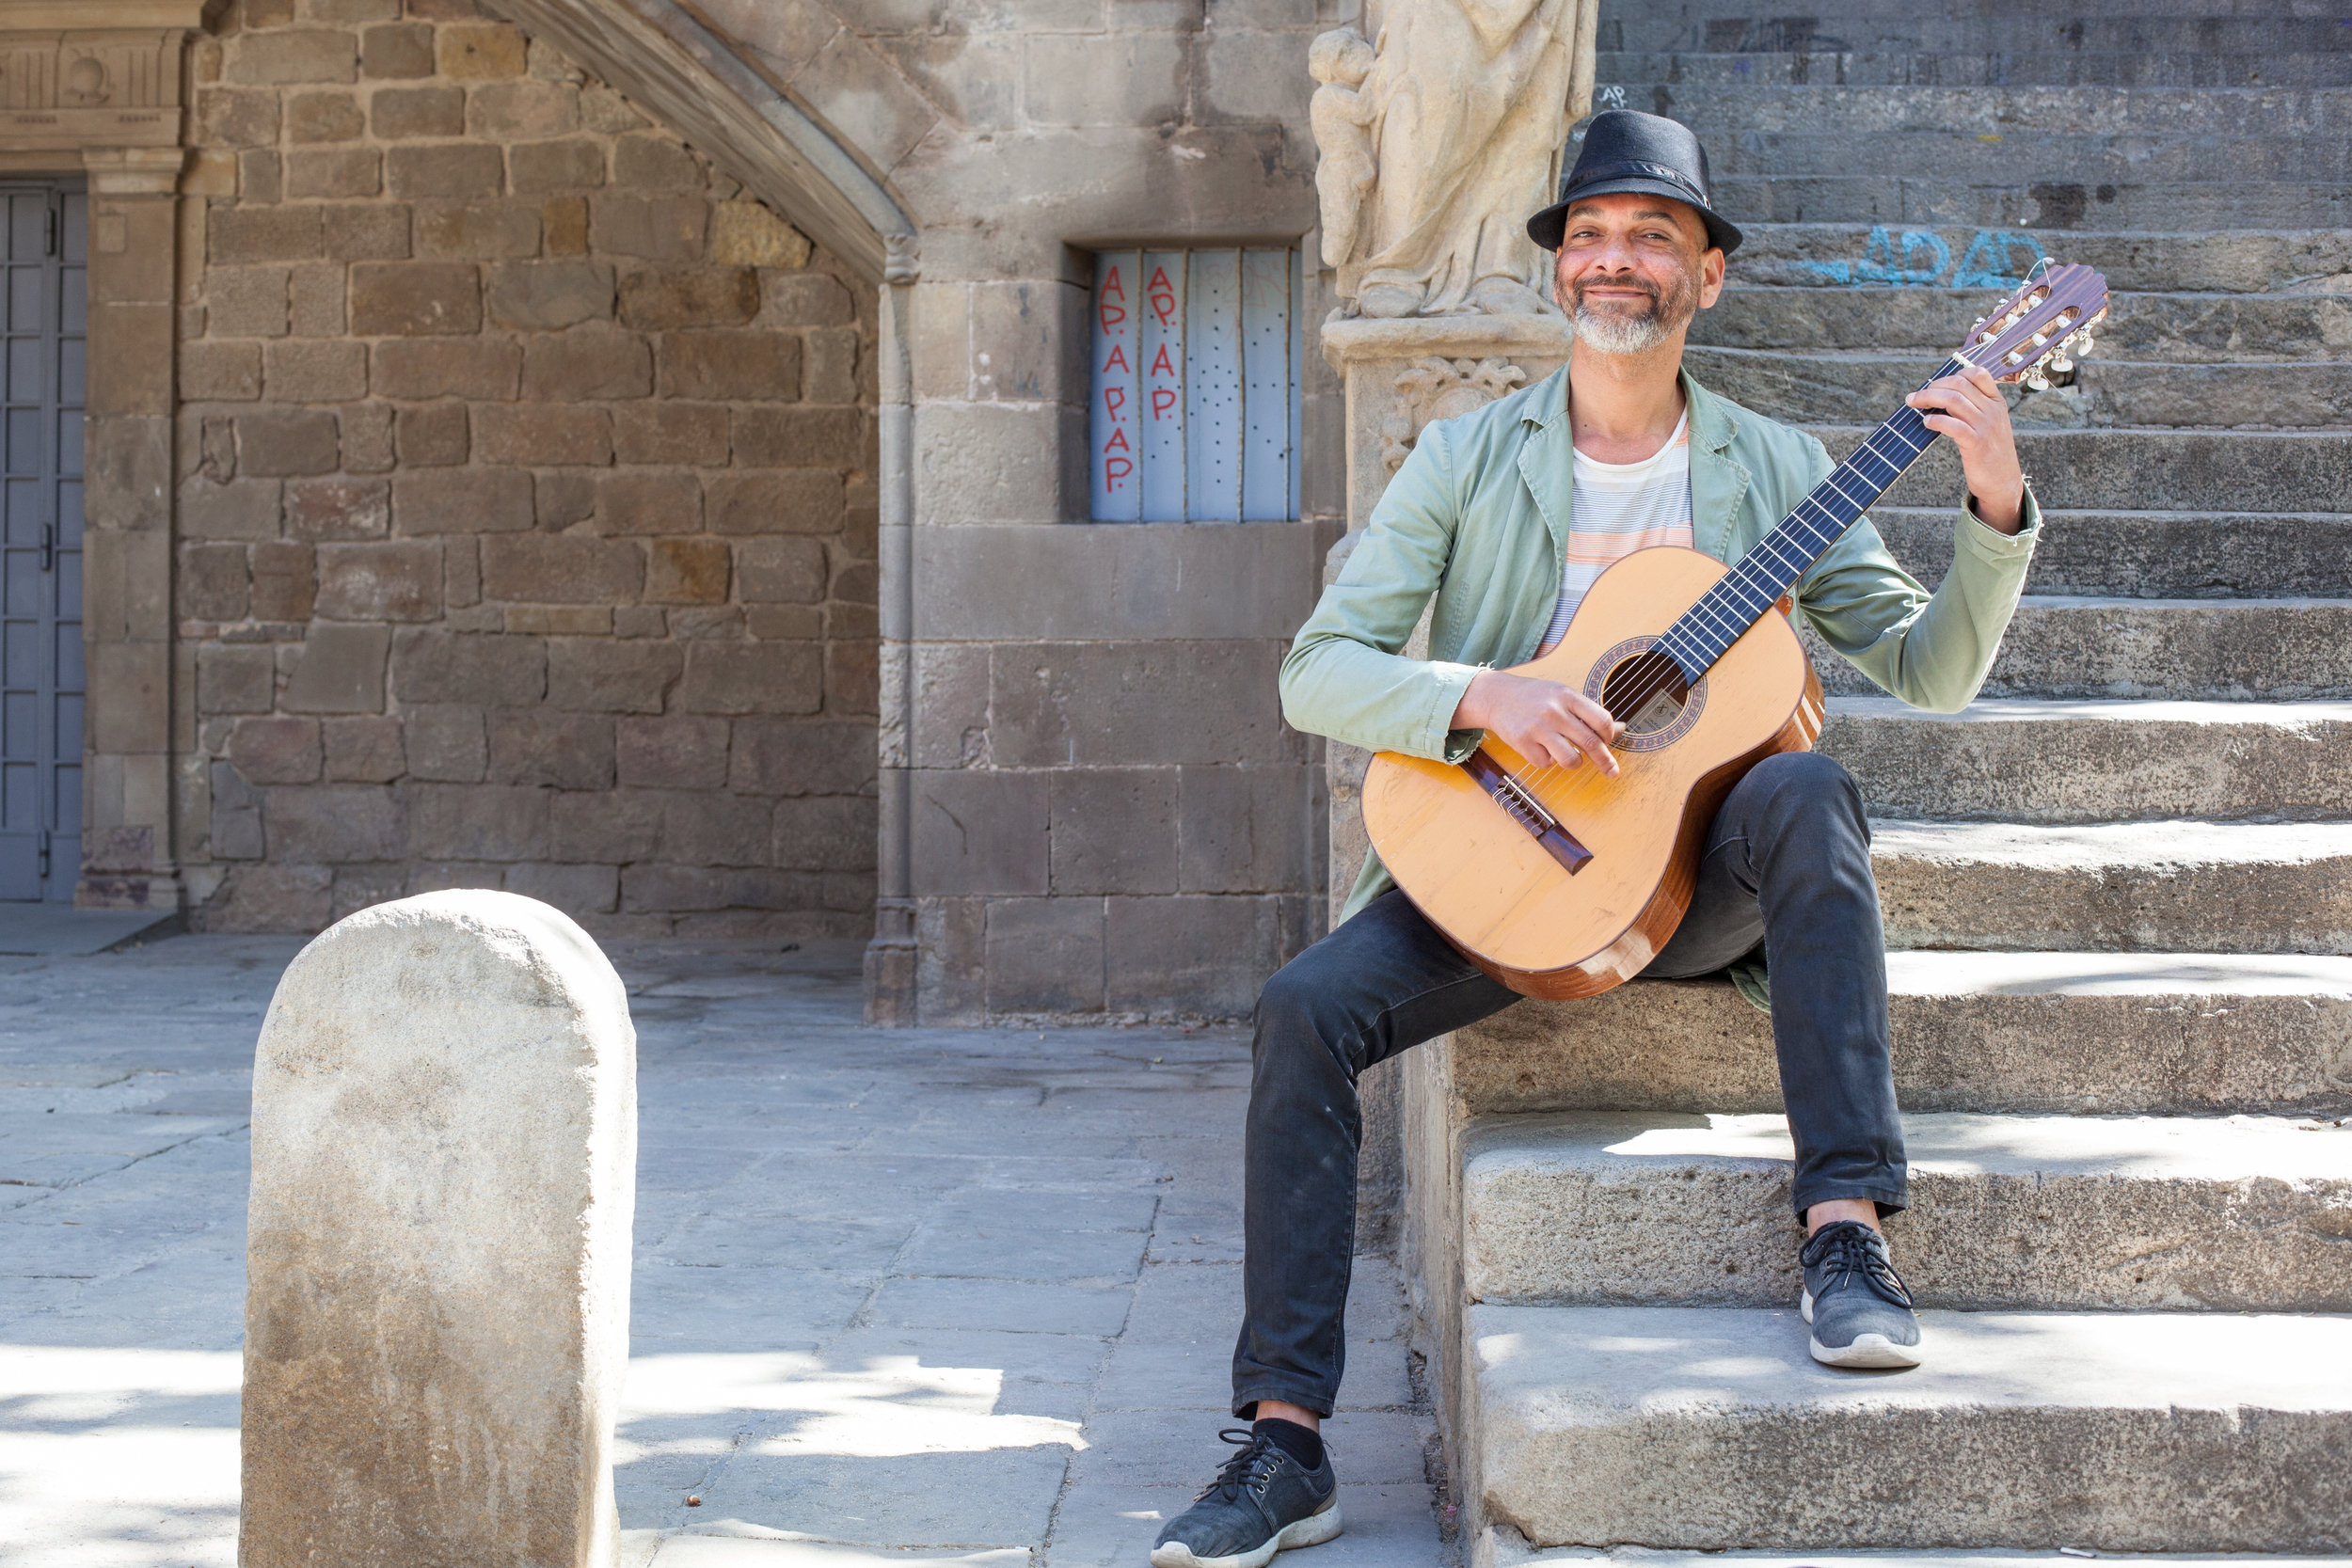 A street musician in Barcelona, Spain.